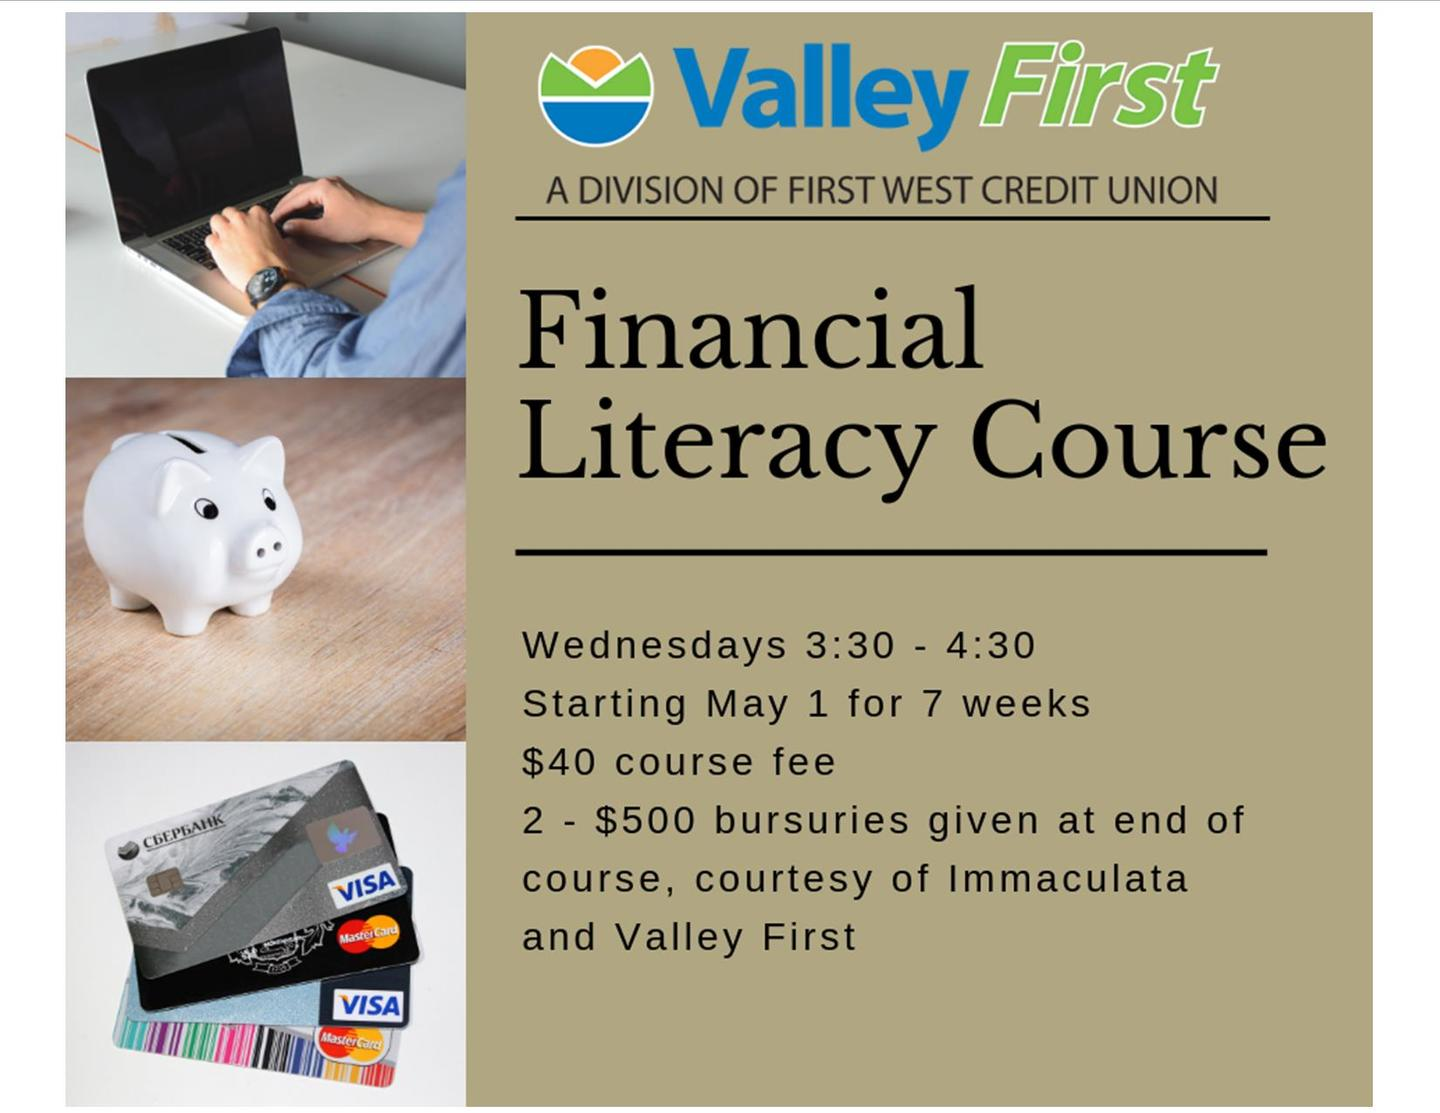 Financial Literacy Course